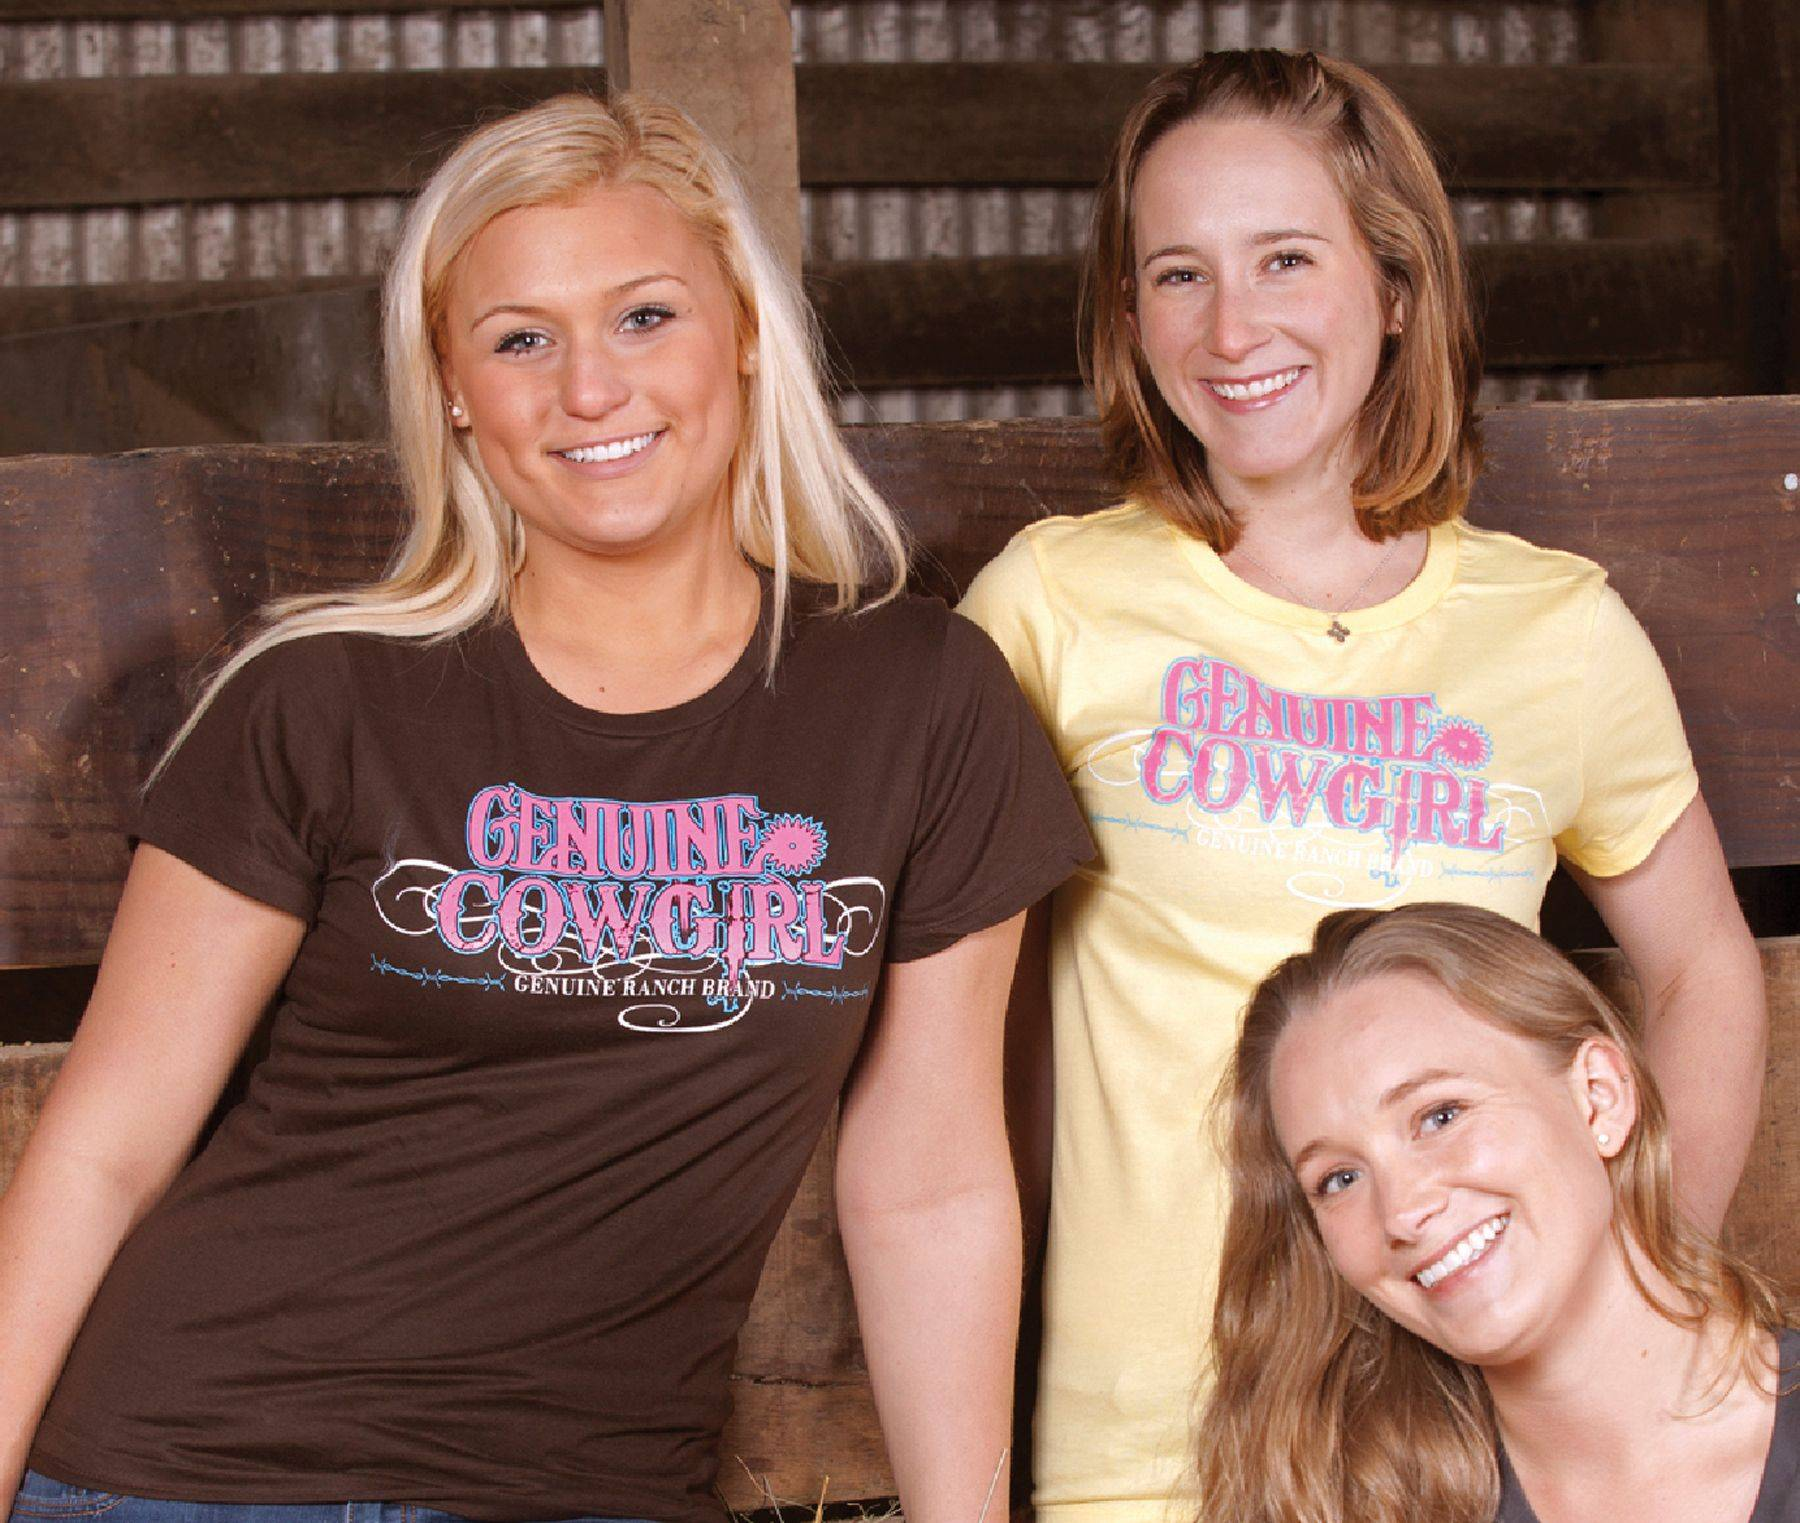 Genuine Ranch Brand Ladies' Genuine Cowgirl Logo Tee